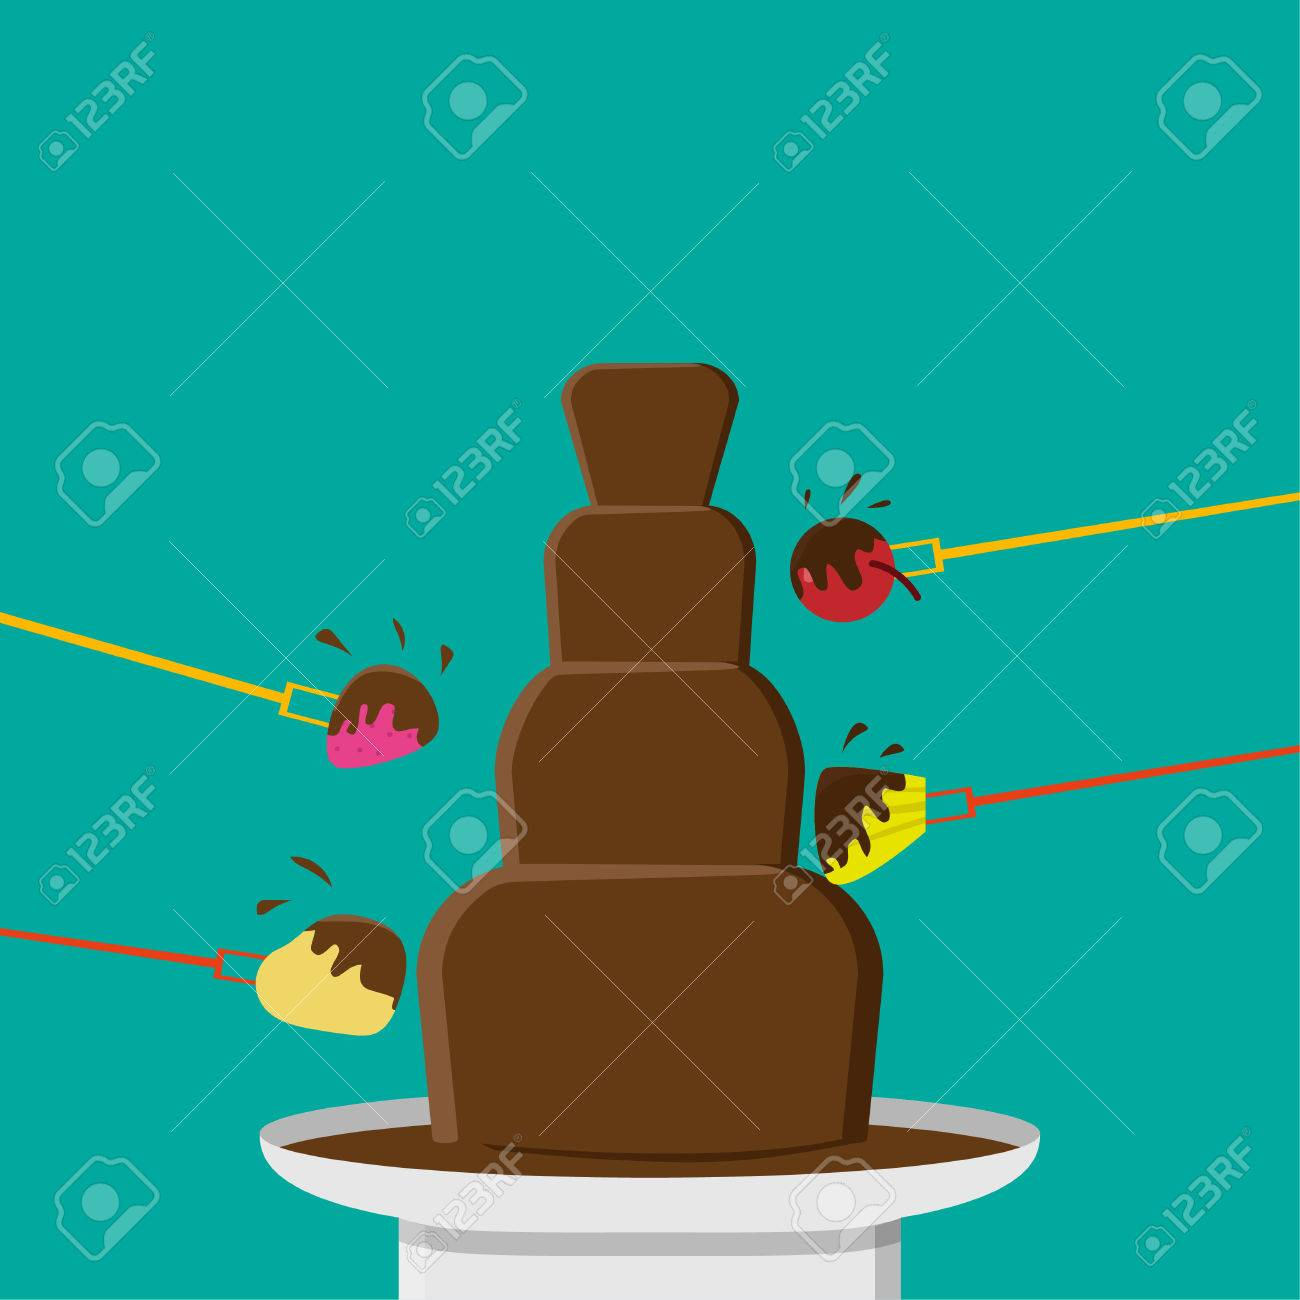 Chocolate Fondue Party In Flat Style, Vector Design Royalty Free ...